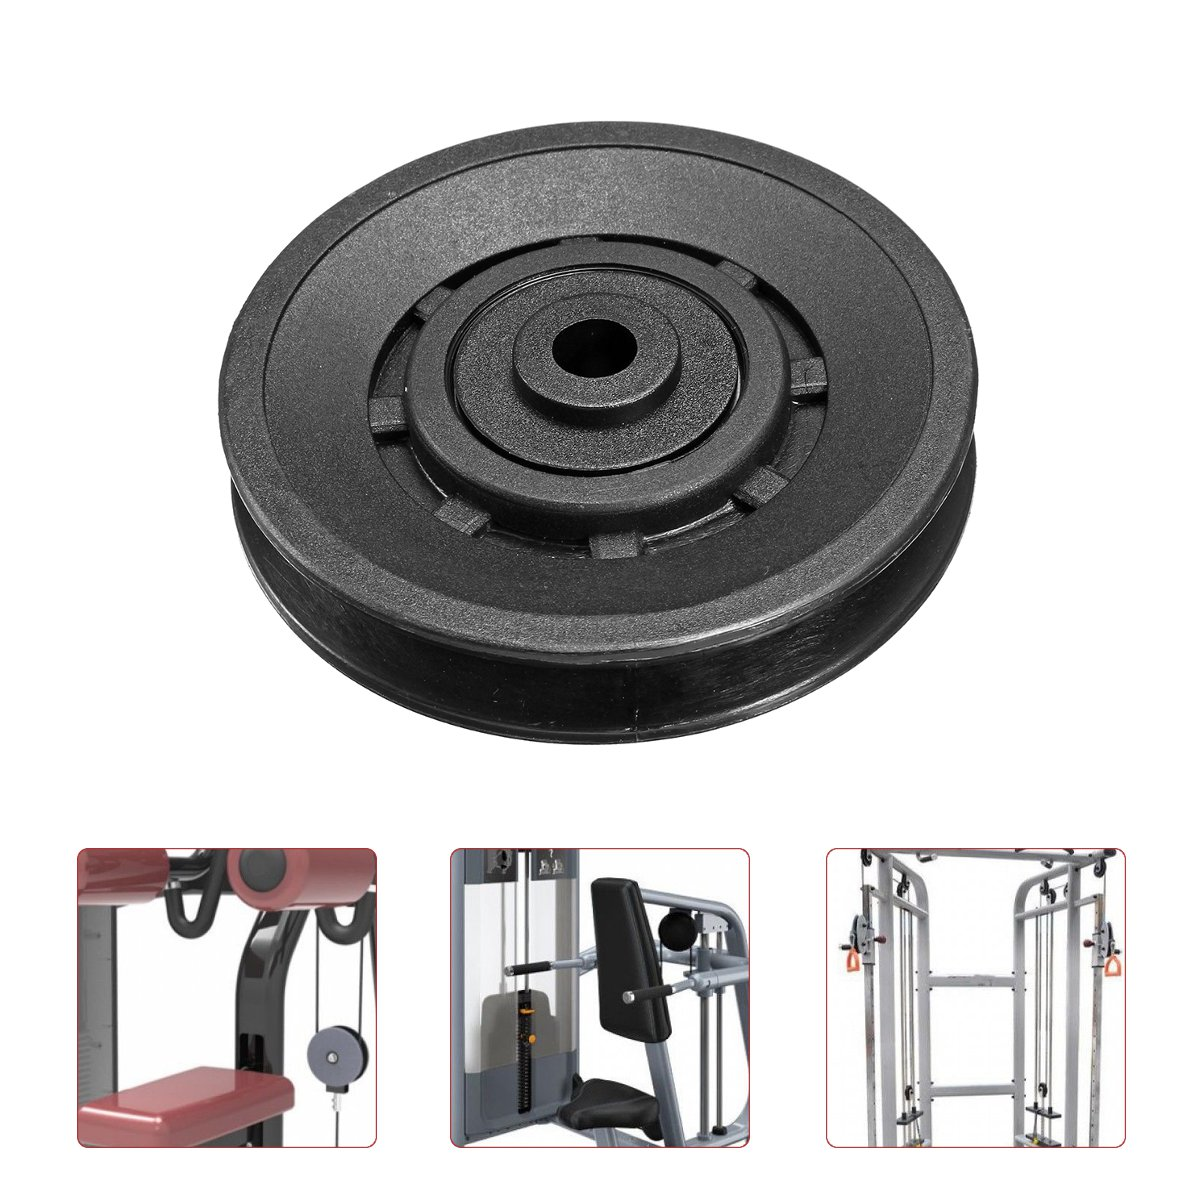 High Quality 90mm Universal Nylon Wearproof Bearing Pulley Wheel Cable Gym Sport Fitness Equipment Part Universal Black